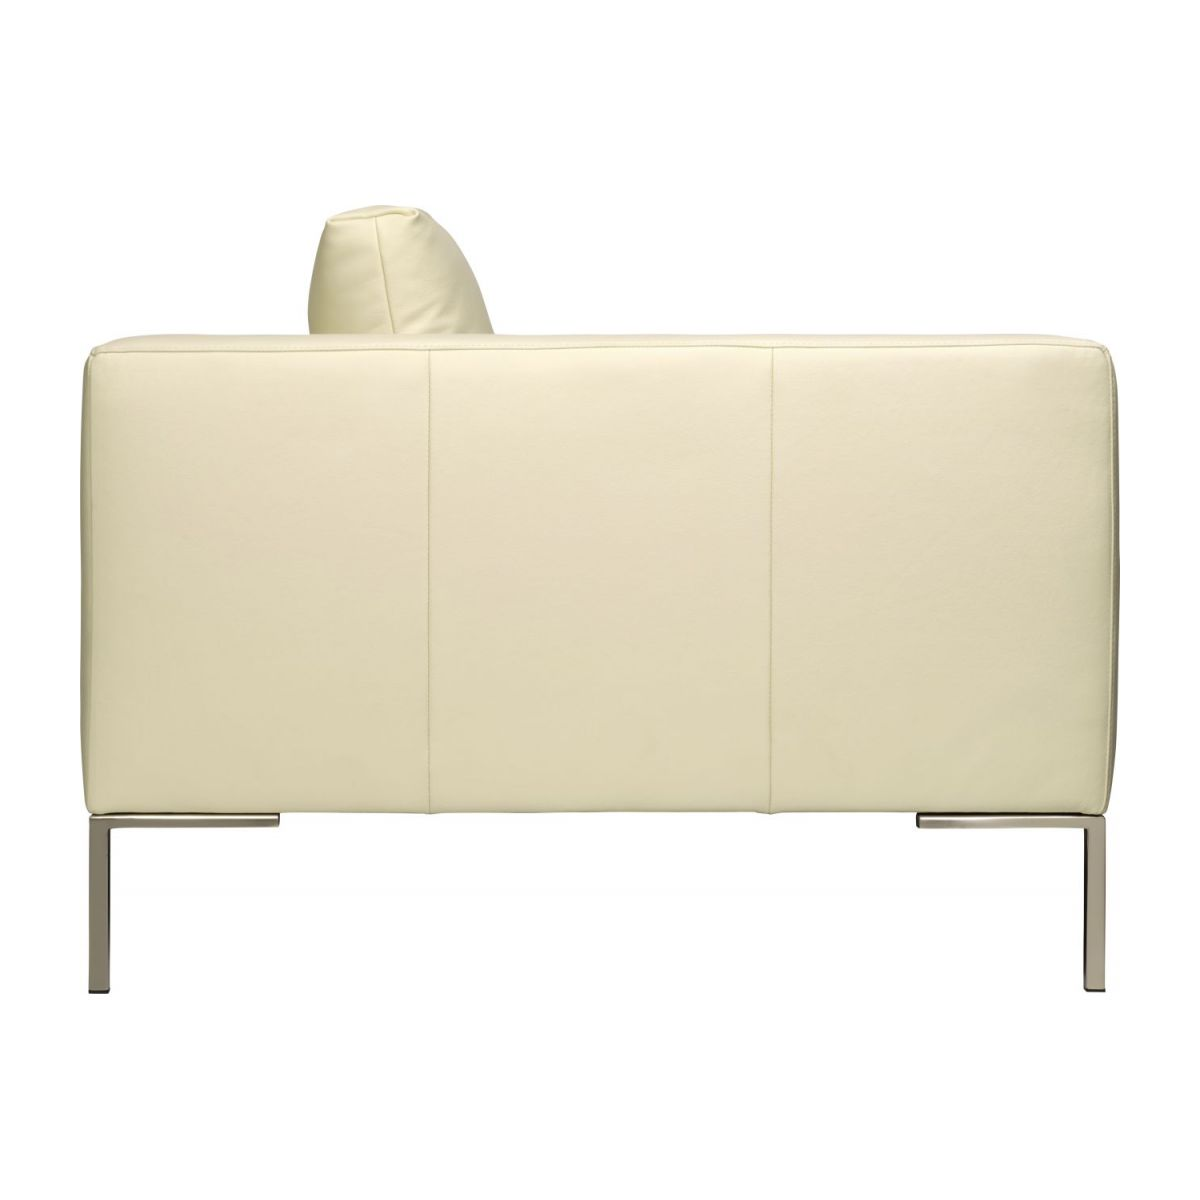 2 seater sofa in Eton veined leather, cream n°5